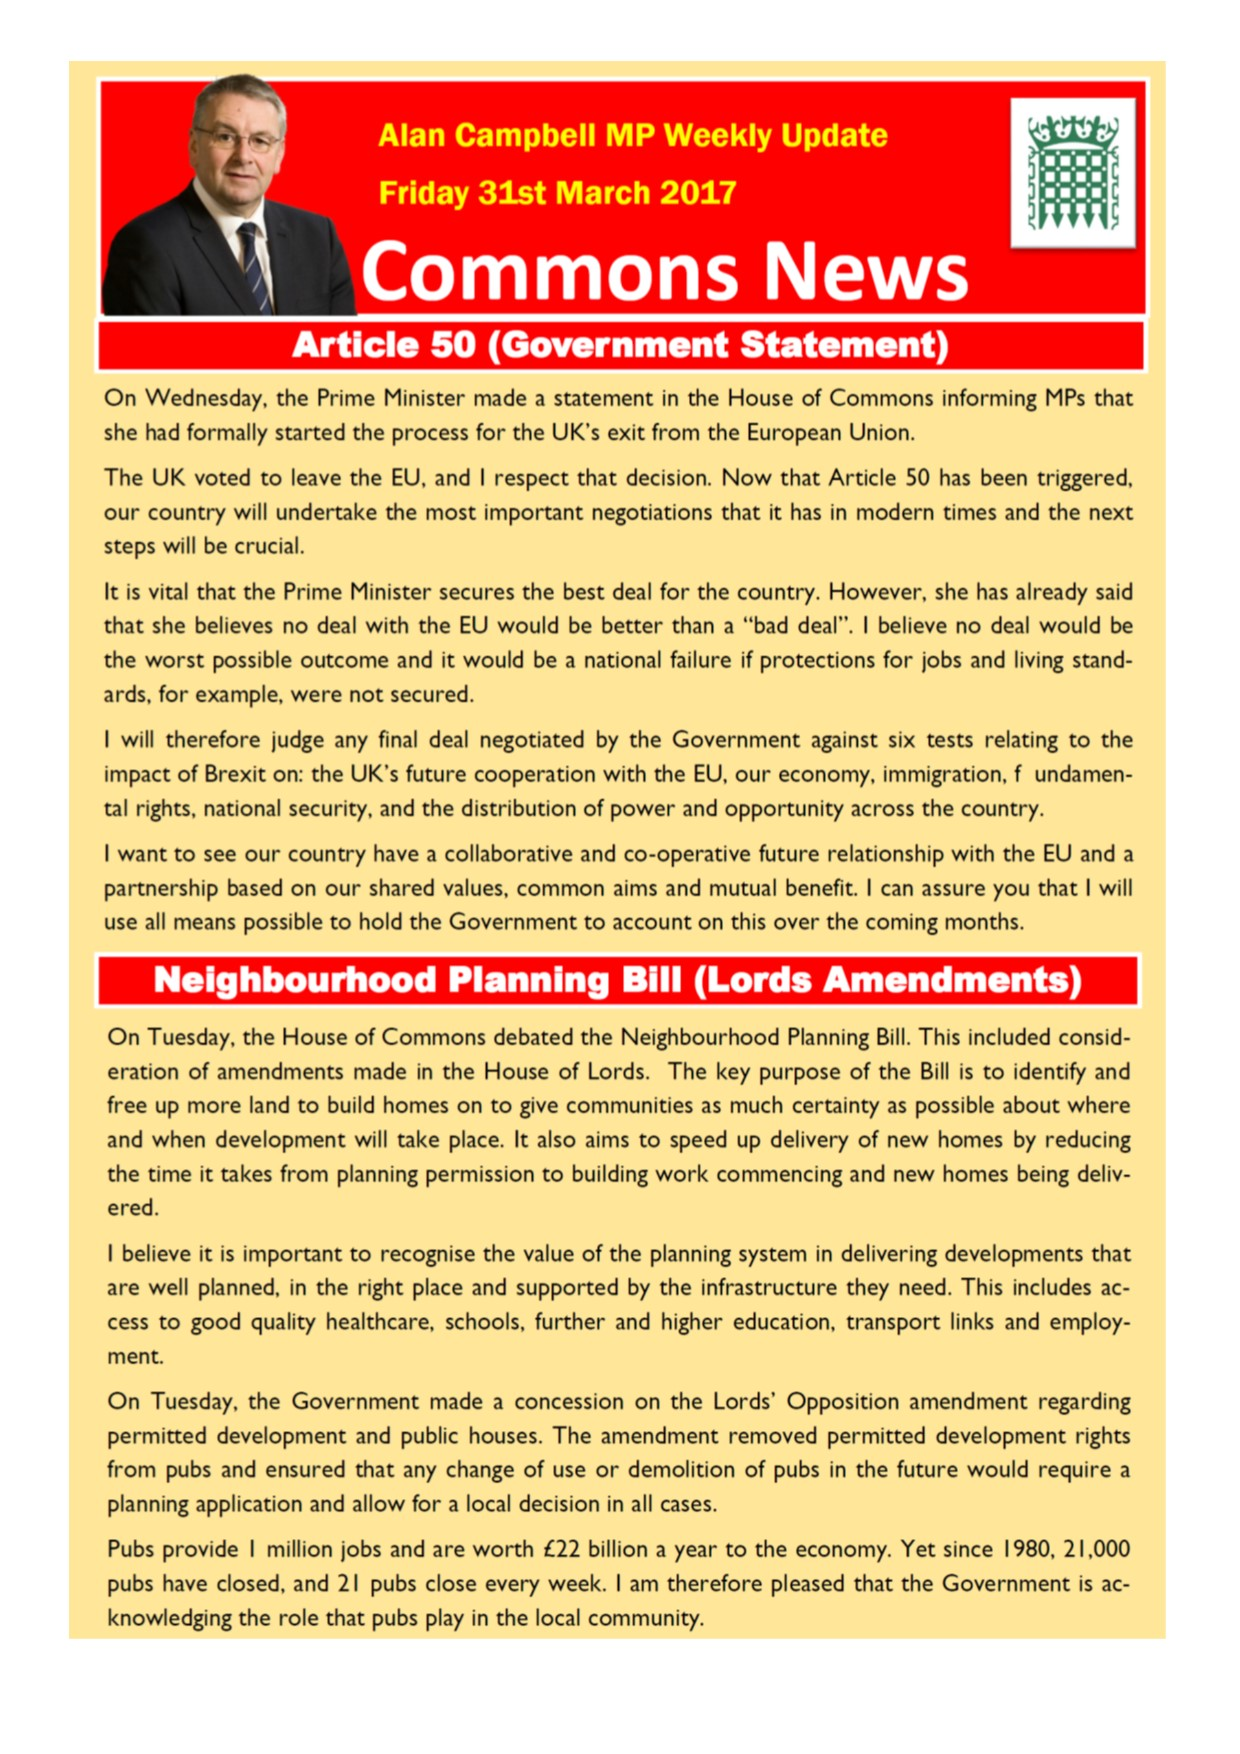 Alan_Campbell_MP_-_Commons_News_-_31_March_2017.jpg